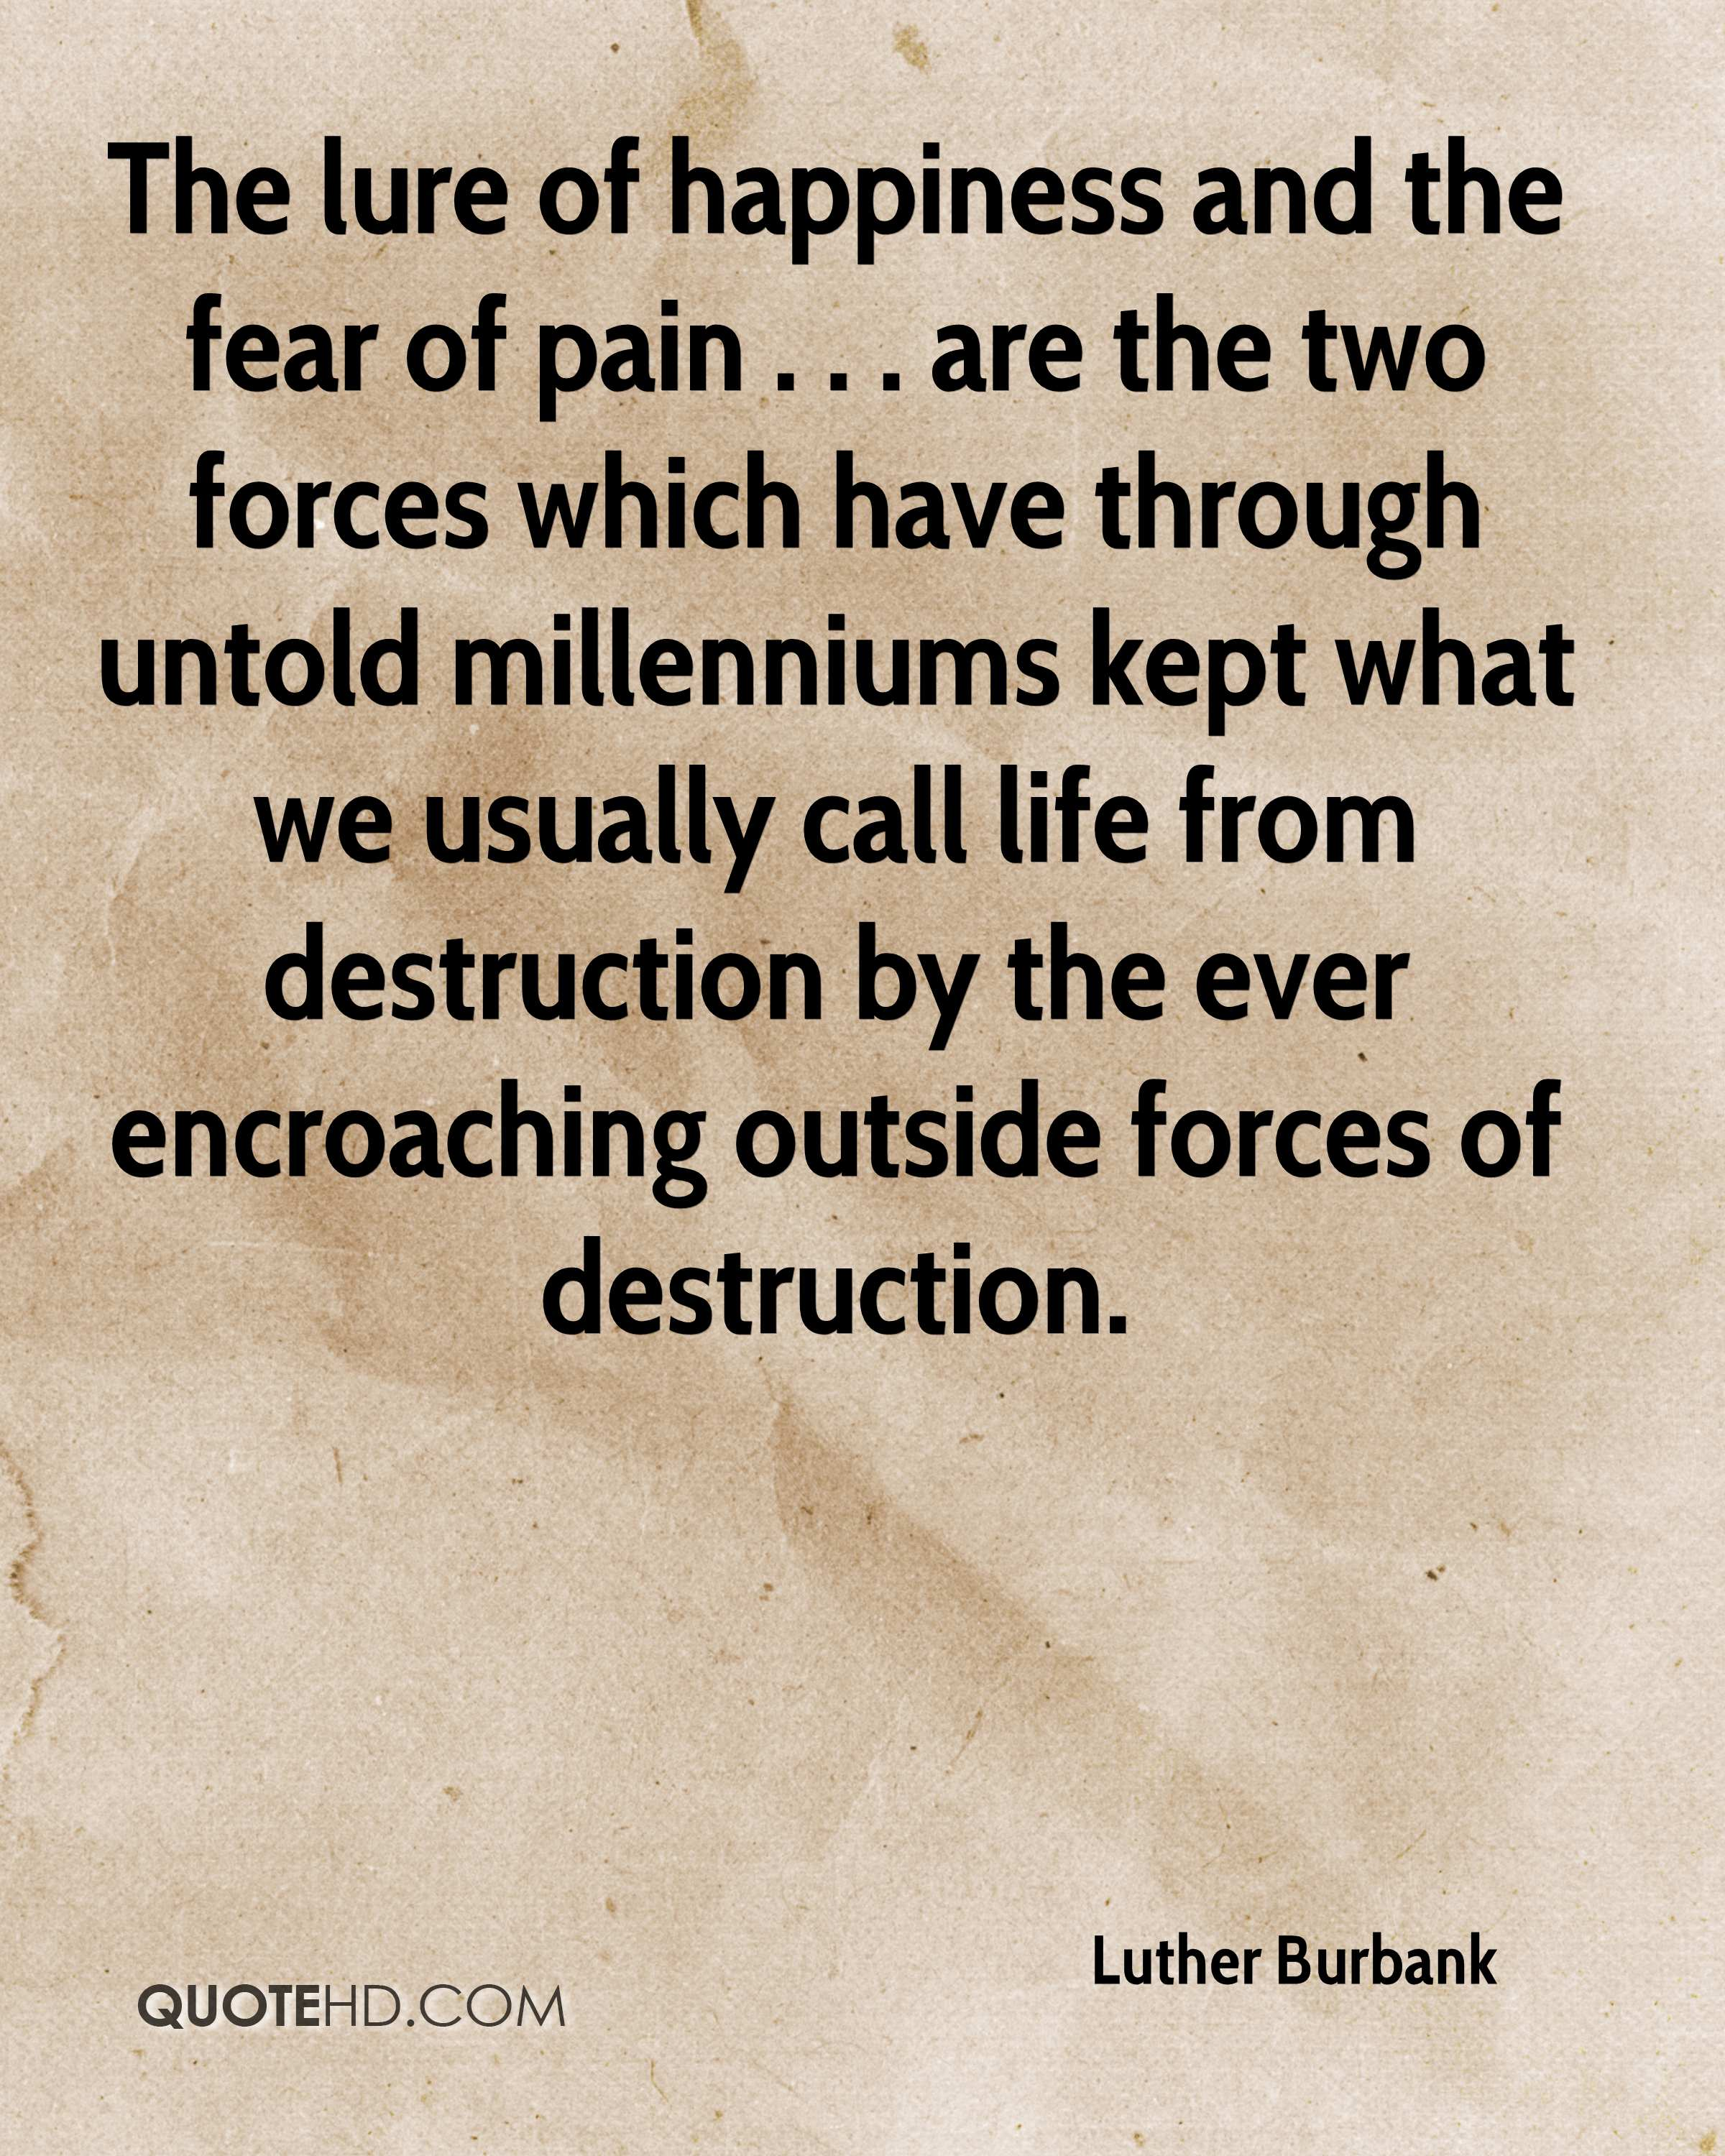 The lure of happiness and the fear of pain . . . are the two forces which have through untold millenniums kept what we usually call life from destruction by the ever encroaching outside forces of destruction.